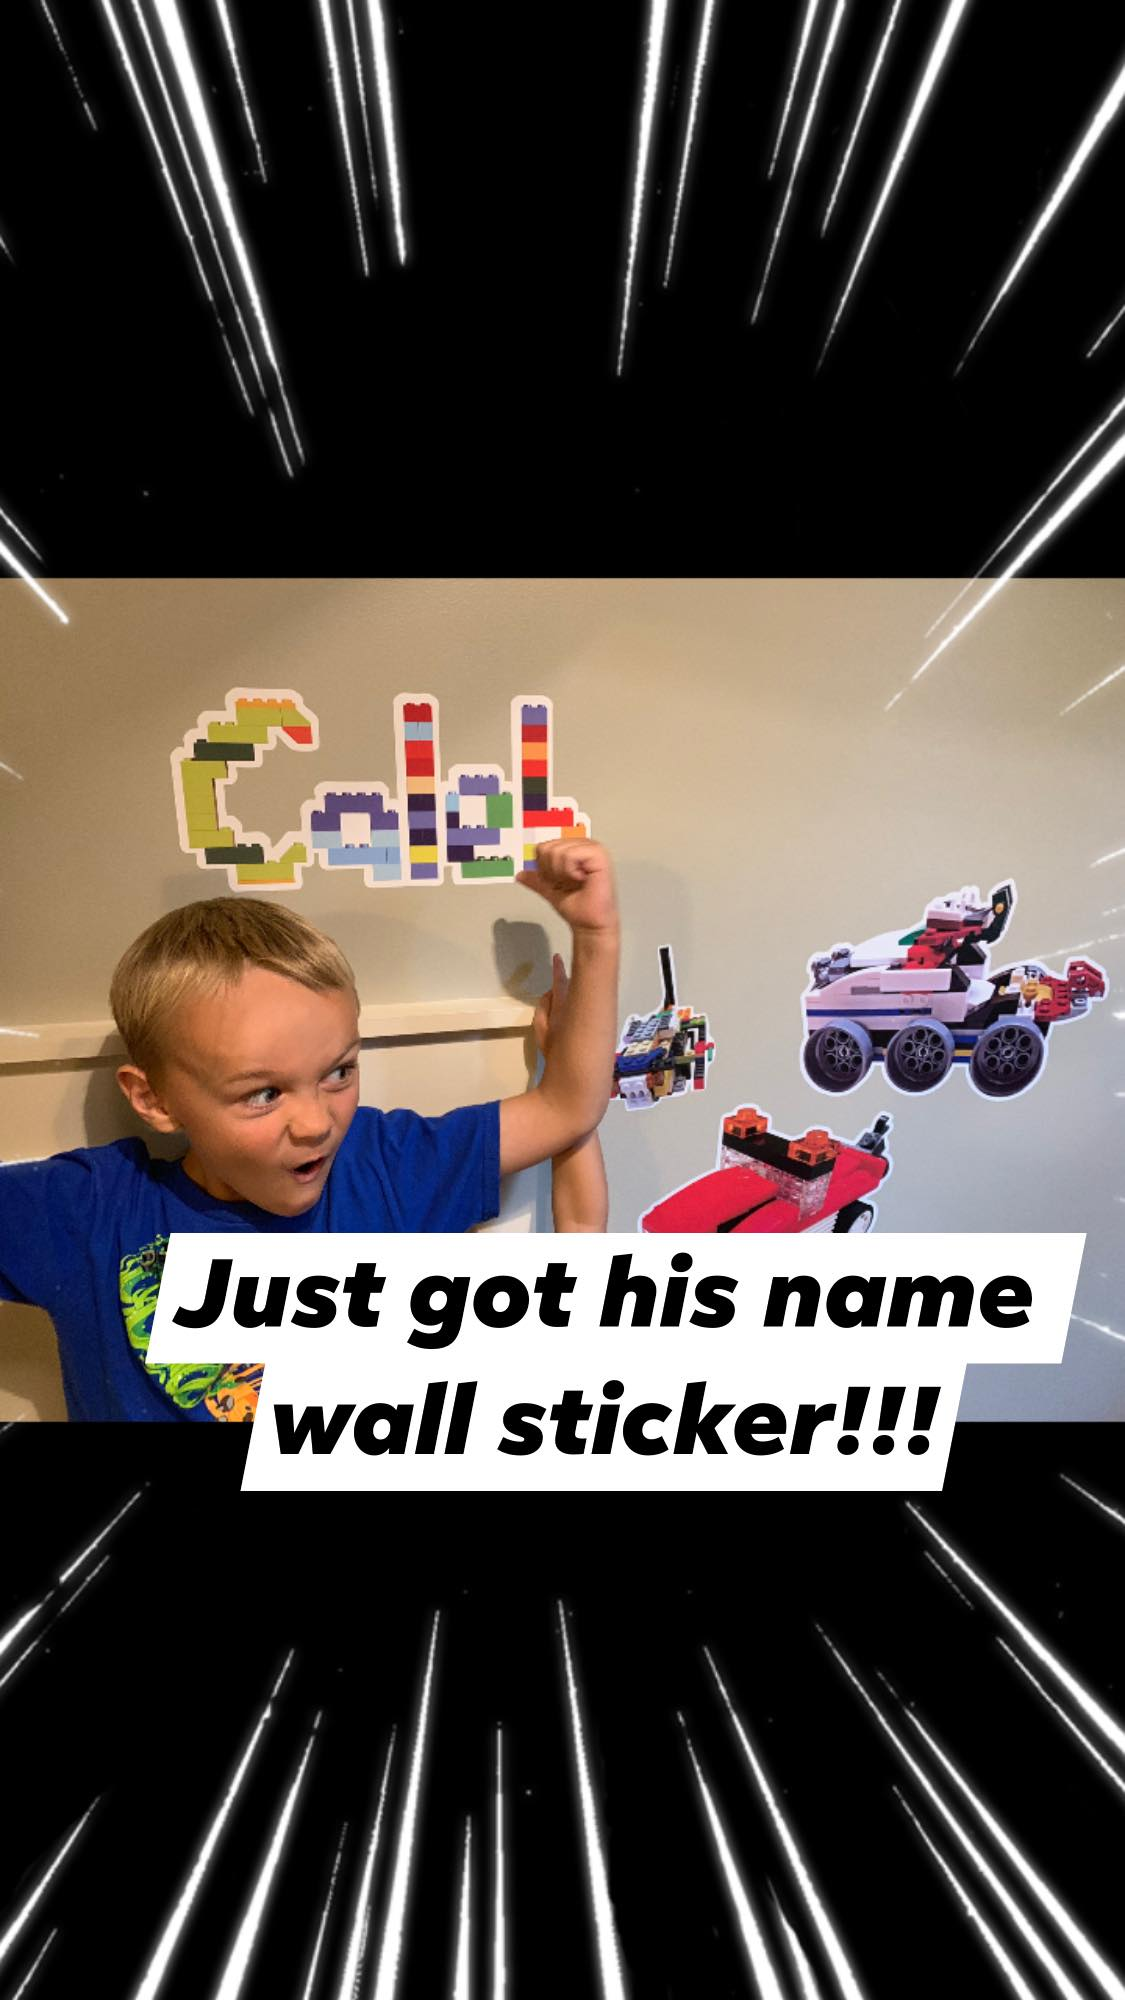 Custom Name Stickers made of LEGO bricks